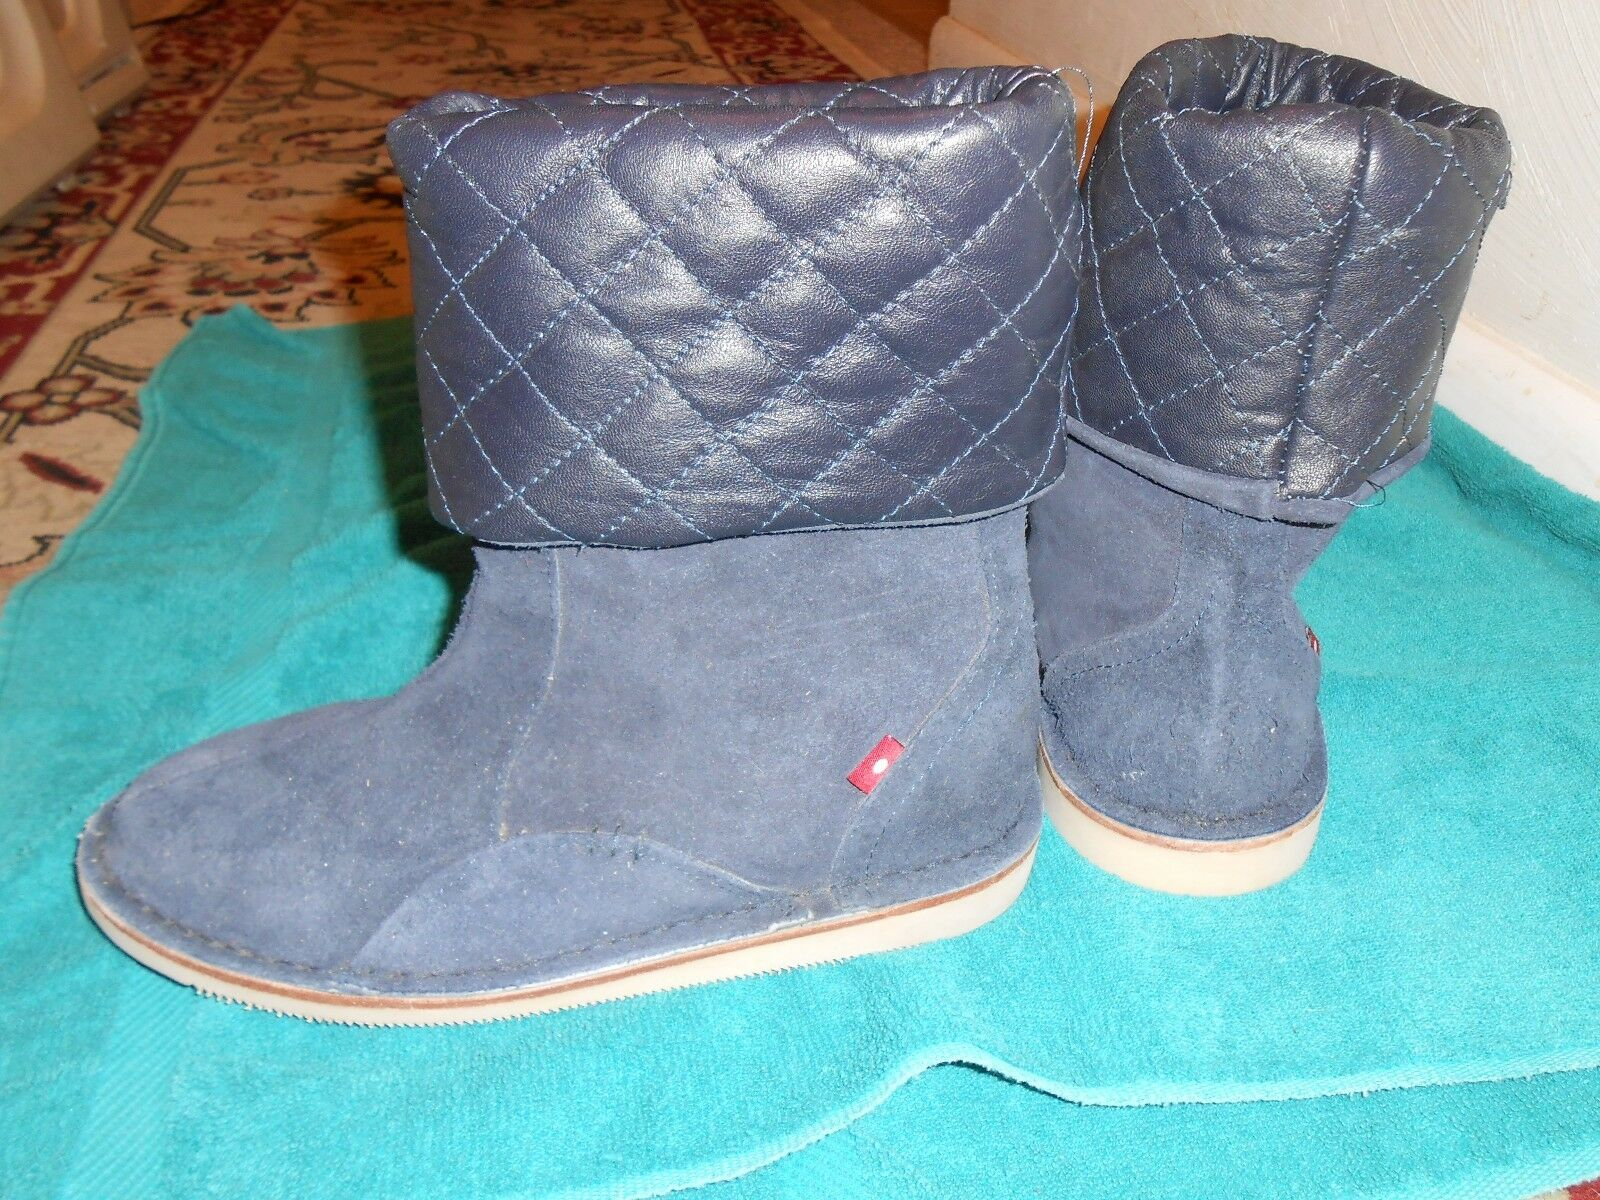 Oliberte navy suede Neje Leder Stiefel display/sample display/sample display/sample 7M New no box save  dc179b